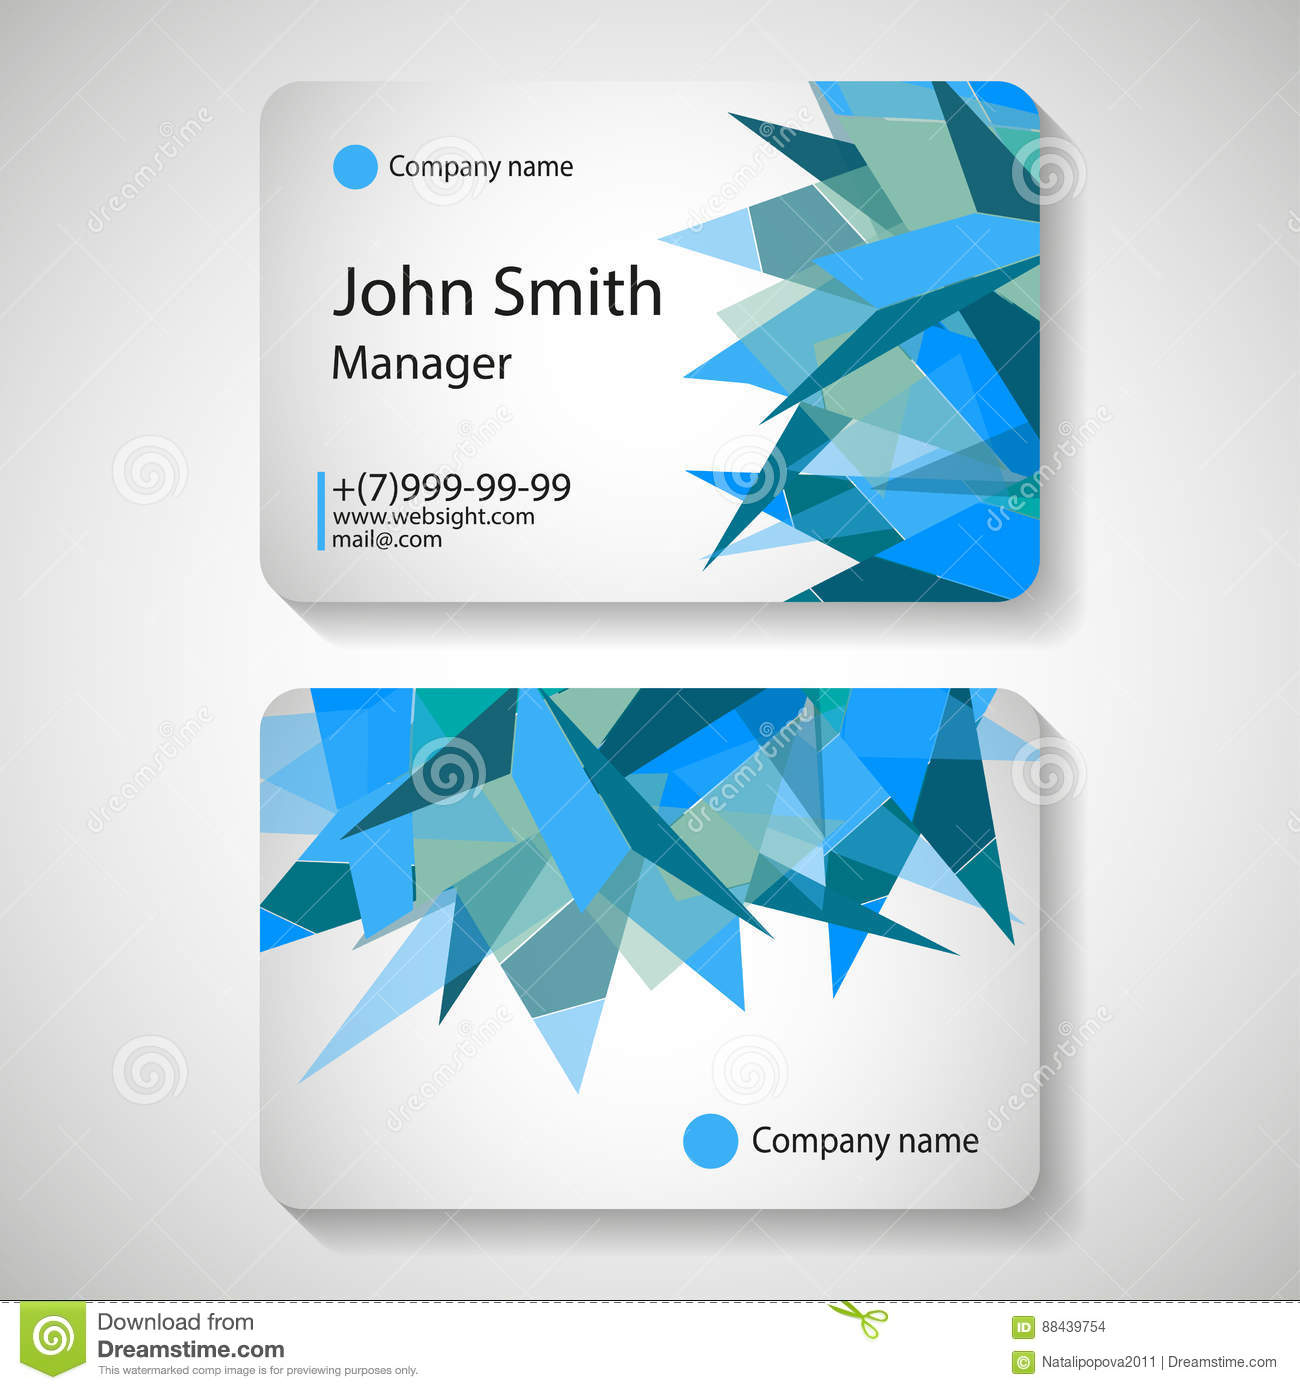 Business card template vector illustration stock vector business card template vector illustration flashek Images